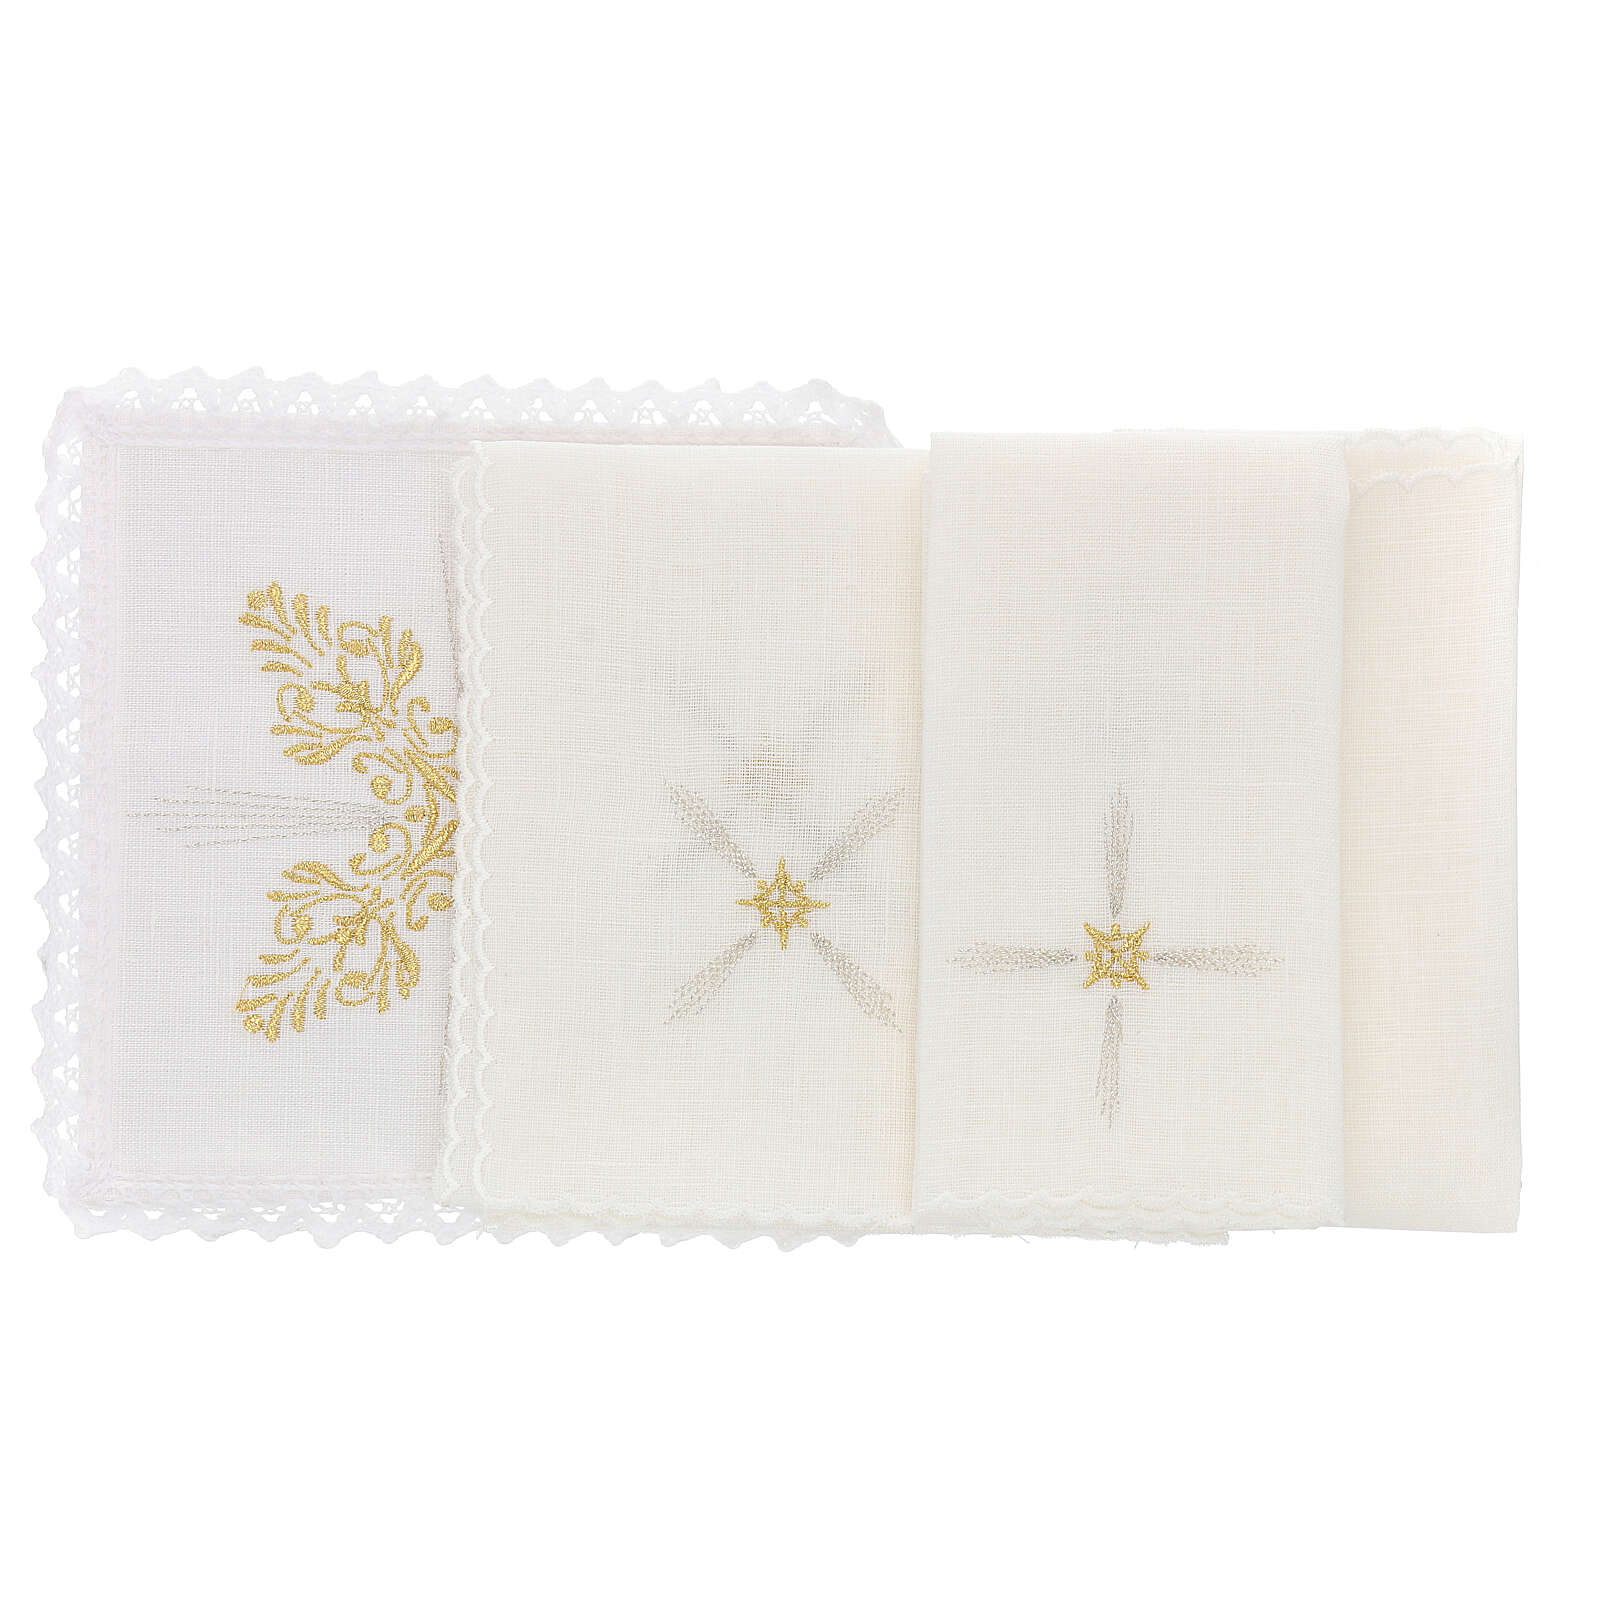 Altar cloths with flower decoration, Baroque style 4